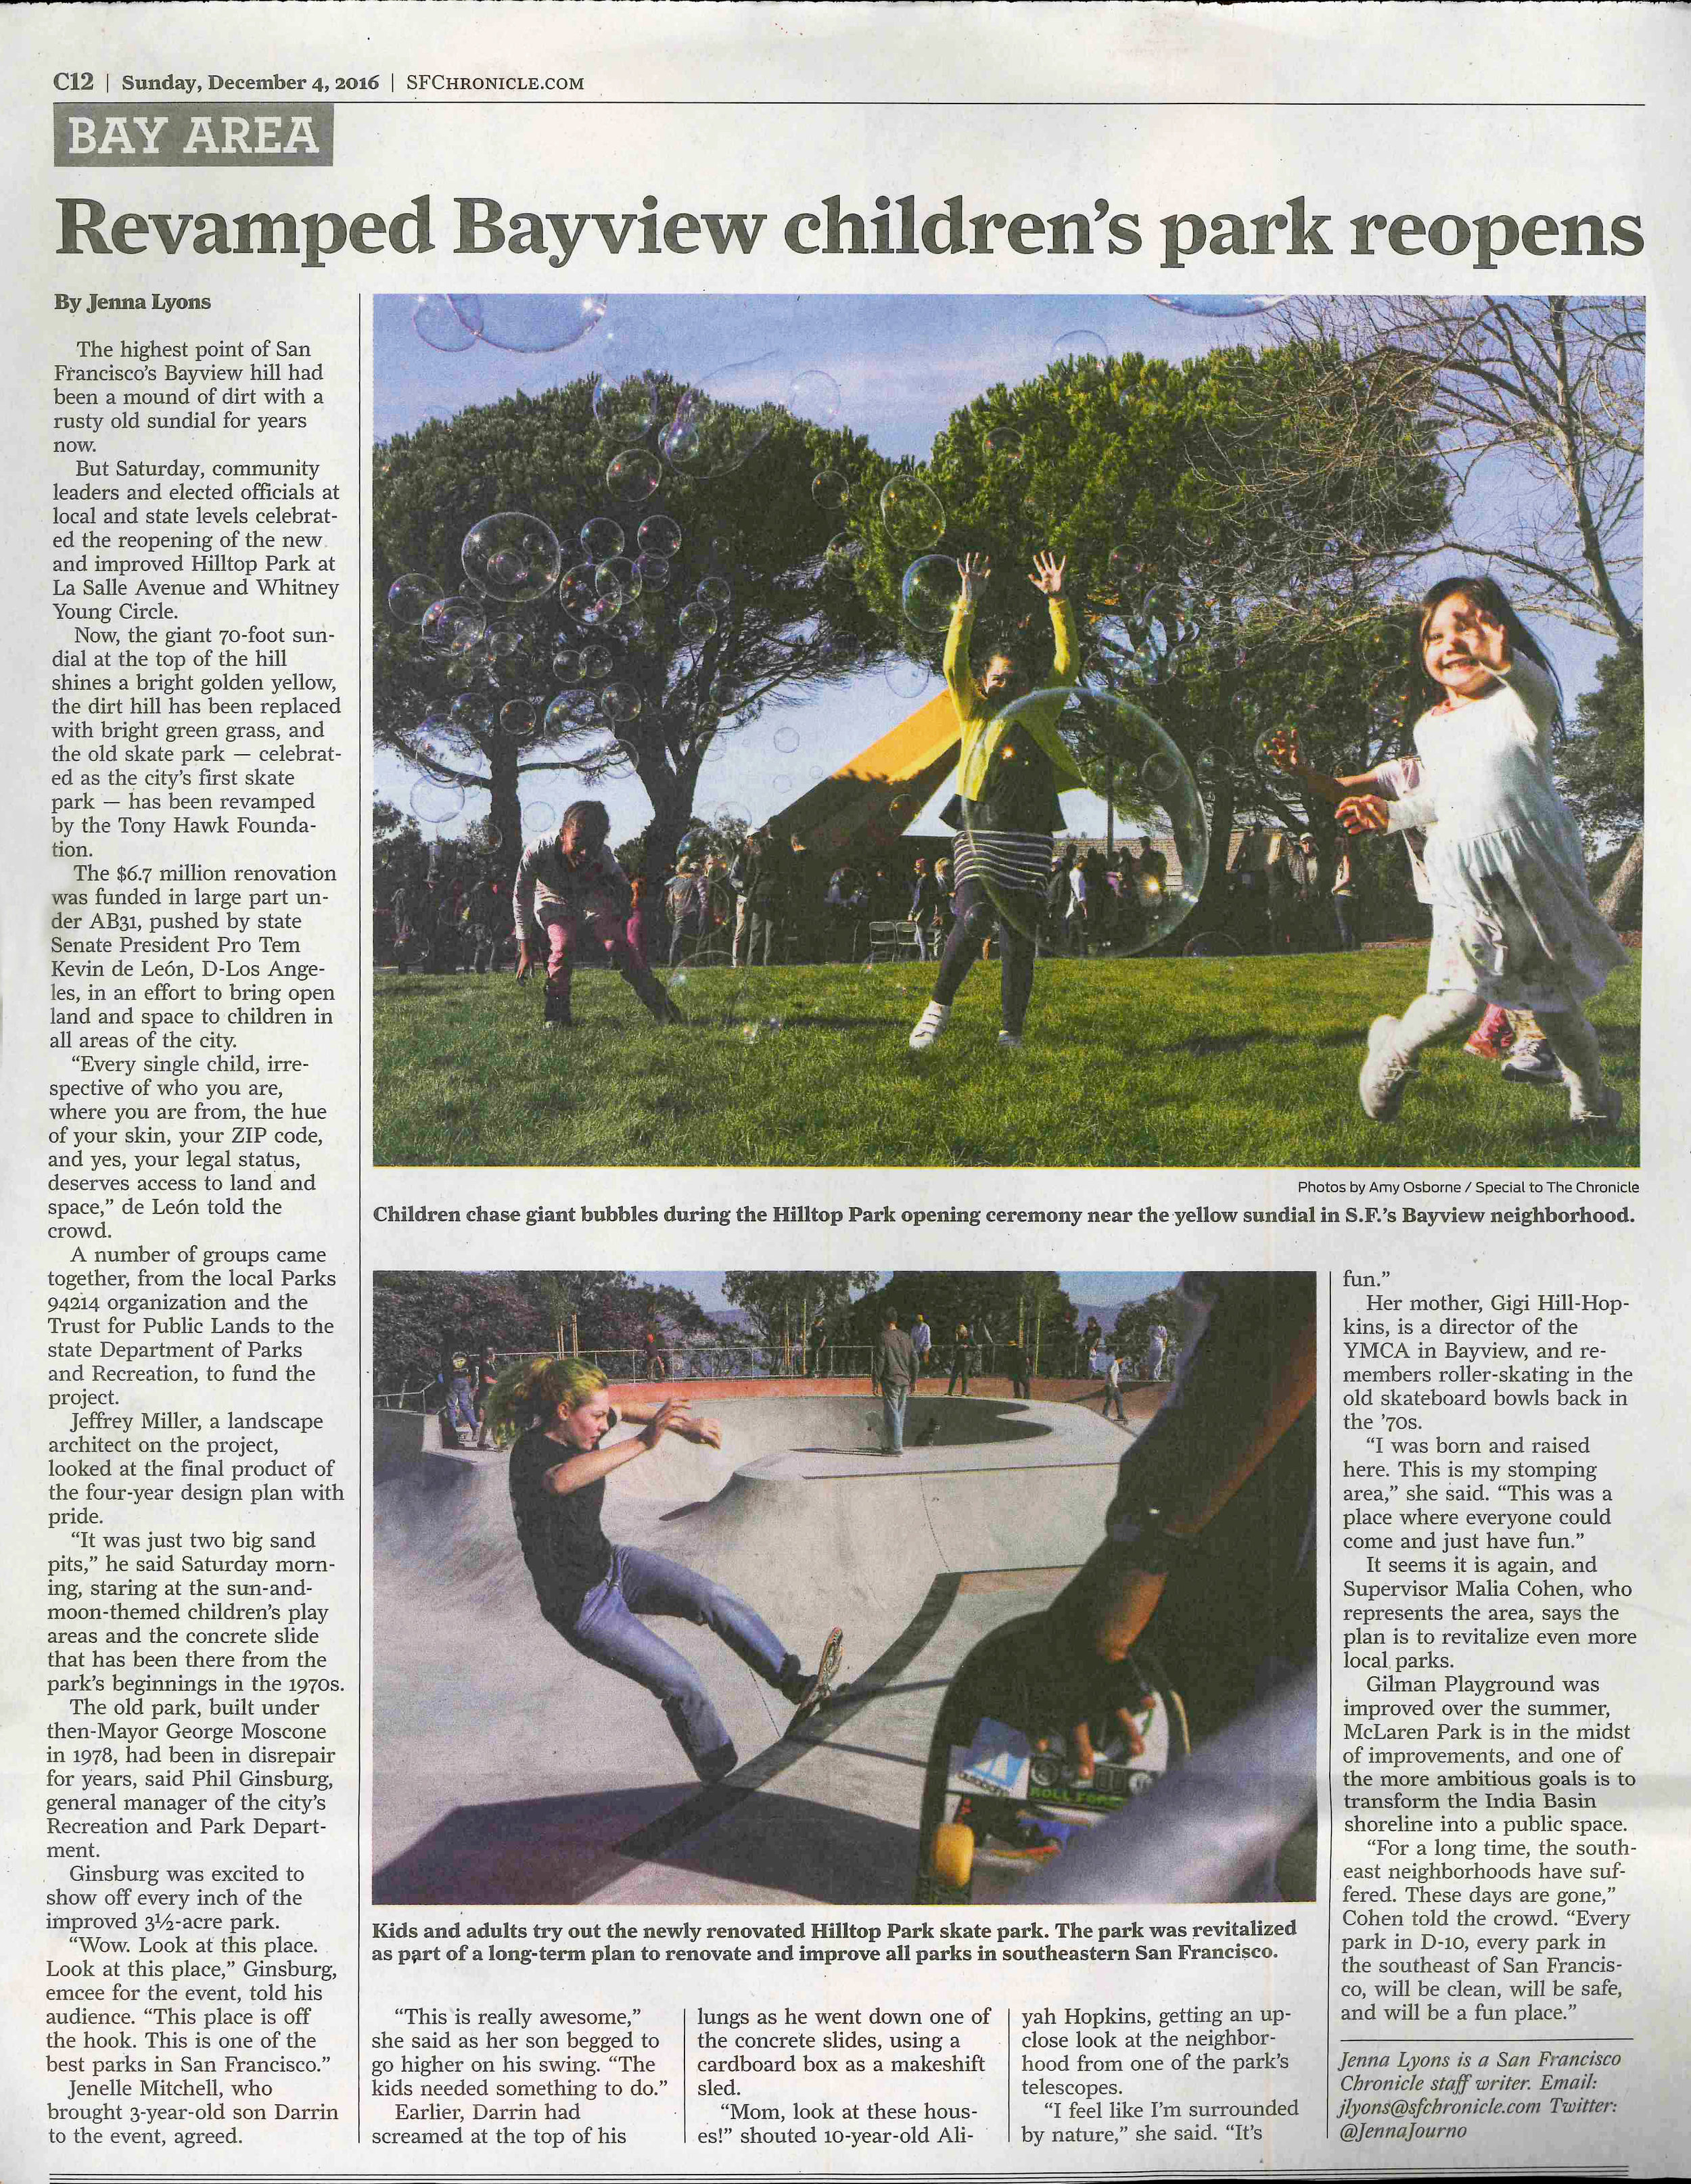 The Grand Opening of Hilltop Park was a great success! Kids of all ages came out to skate in the new Dish, give the new playground a whirl and simply hang out on the grassy hill to take in the views of the city.  The Chronicle published an article  on Sunday, December 4 about the renovation.